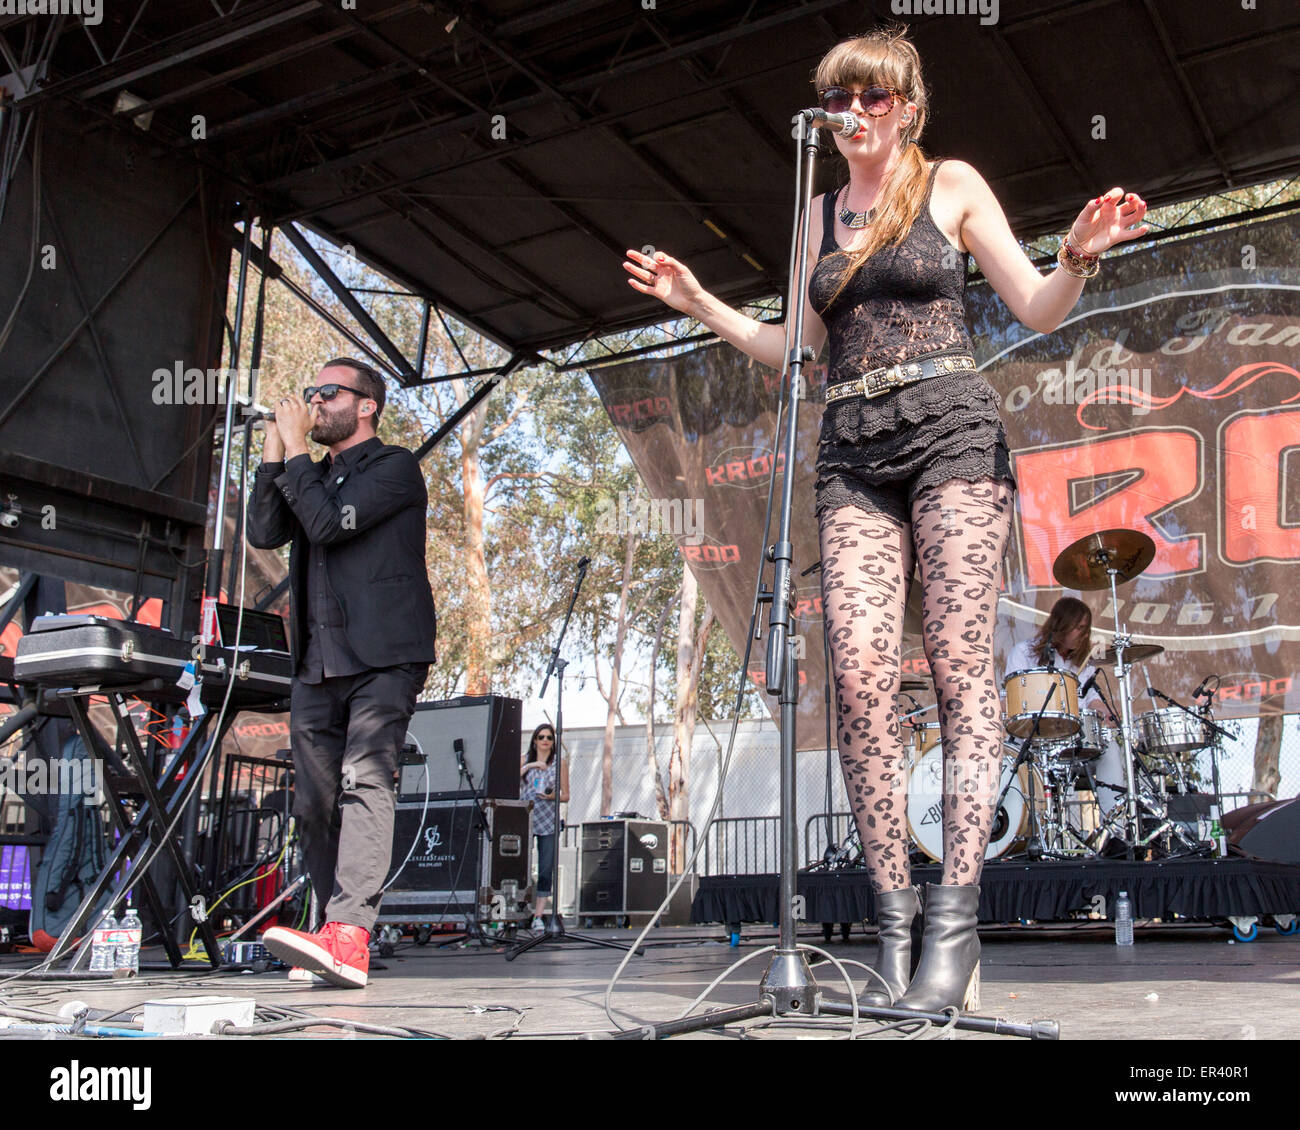 Irvine, California, USA. 16th May, 2015. ALAN WILKIS (L) and LIZY RYAN of Big Data perform live during the KROQ Weenie Roast Y Fiesta at Irvine Meadows Amphitheatre in Irvine, California © Daniel DeSlover/ZUMA Wire/Alamy Live News Stock Photo